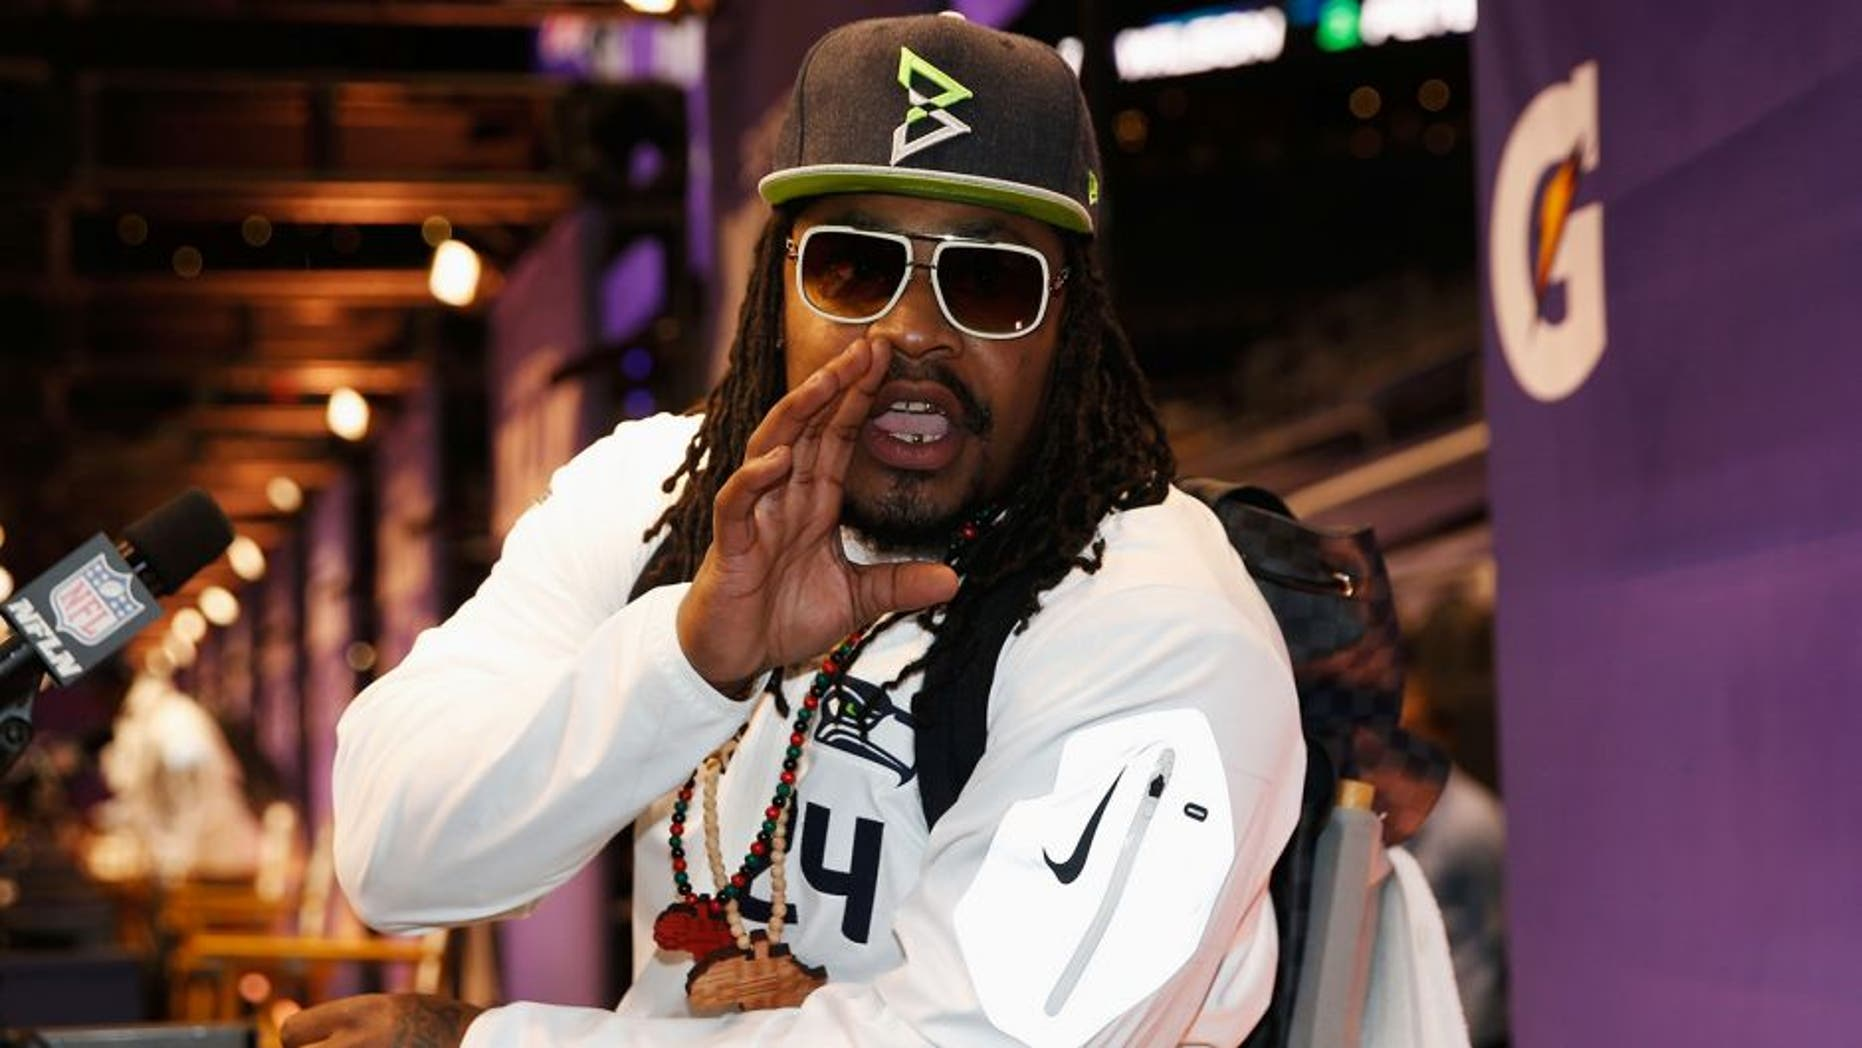 PHOENIX, AZ - JANUARY 27: Marshawn Lynch #24 of the Seattle Seahawks addresses the media at Super Bowl XLIX Media Day Fueled by Gatorade inside U.S. Airways Center on January 27, 2015 in Phoenix, Arizona. (Photo by Christian Petersen/Getty Images)